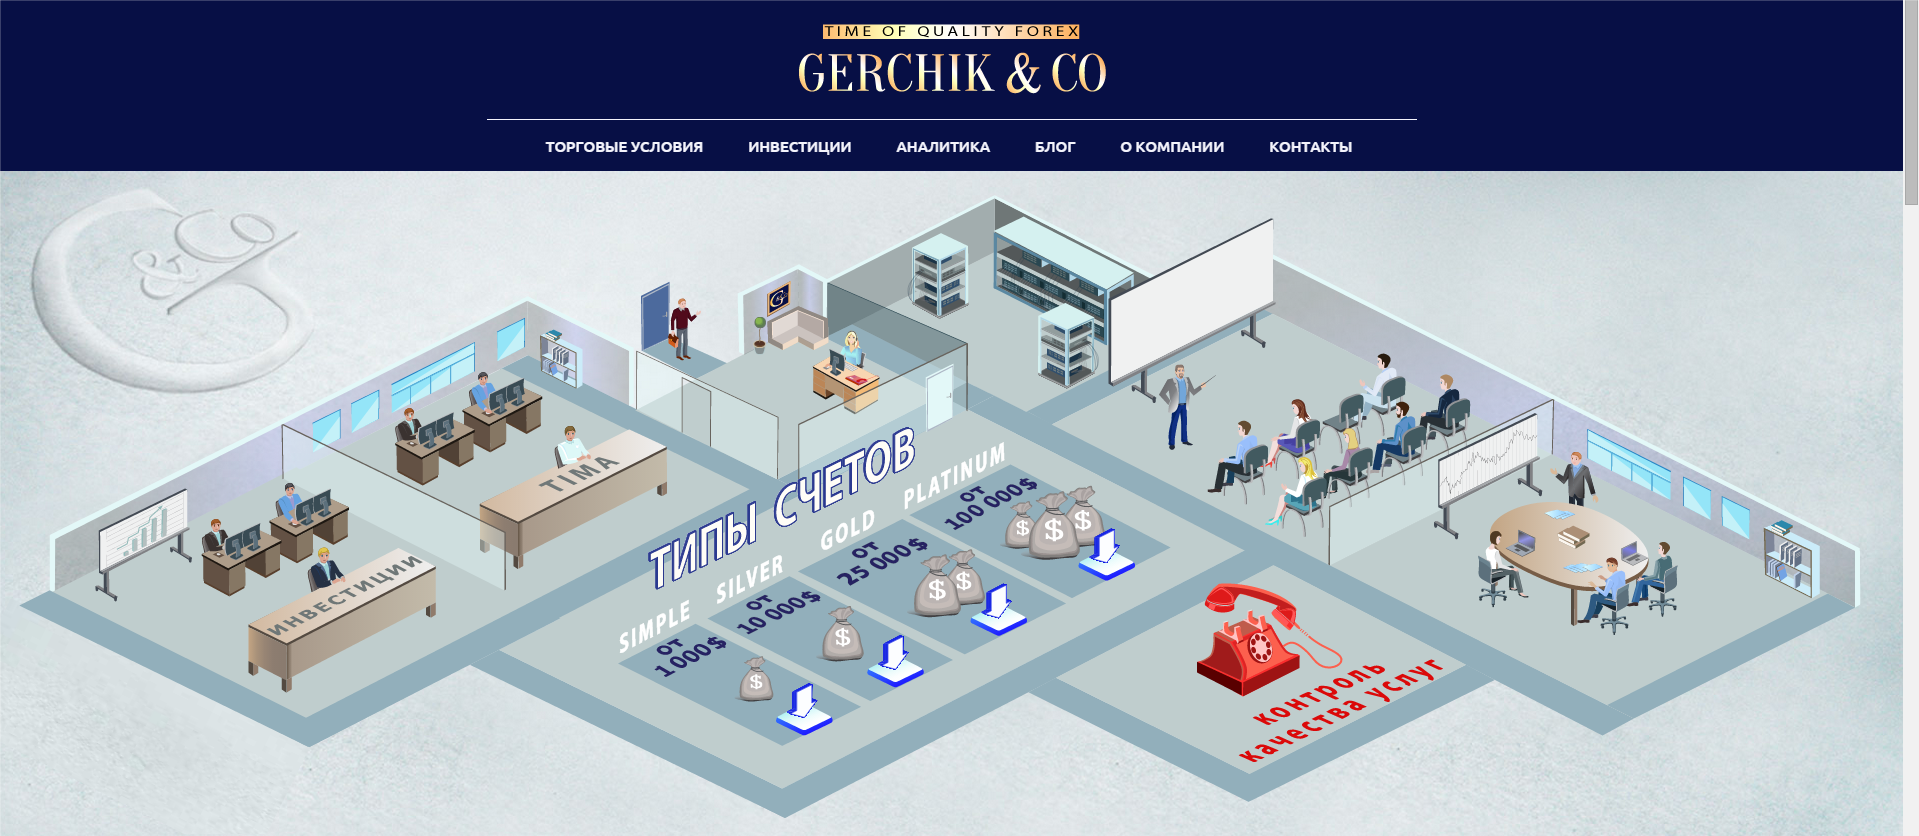 Gerchik & Co отзывы